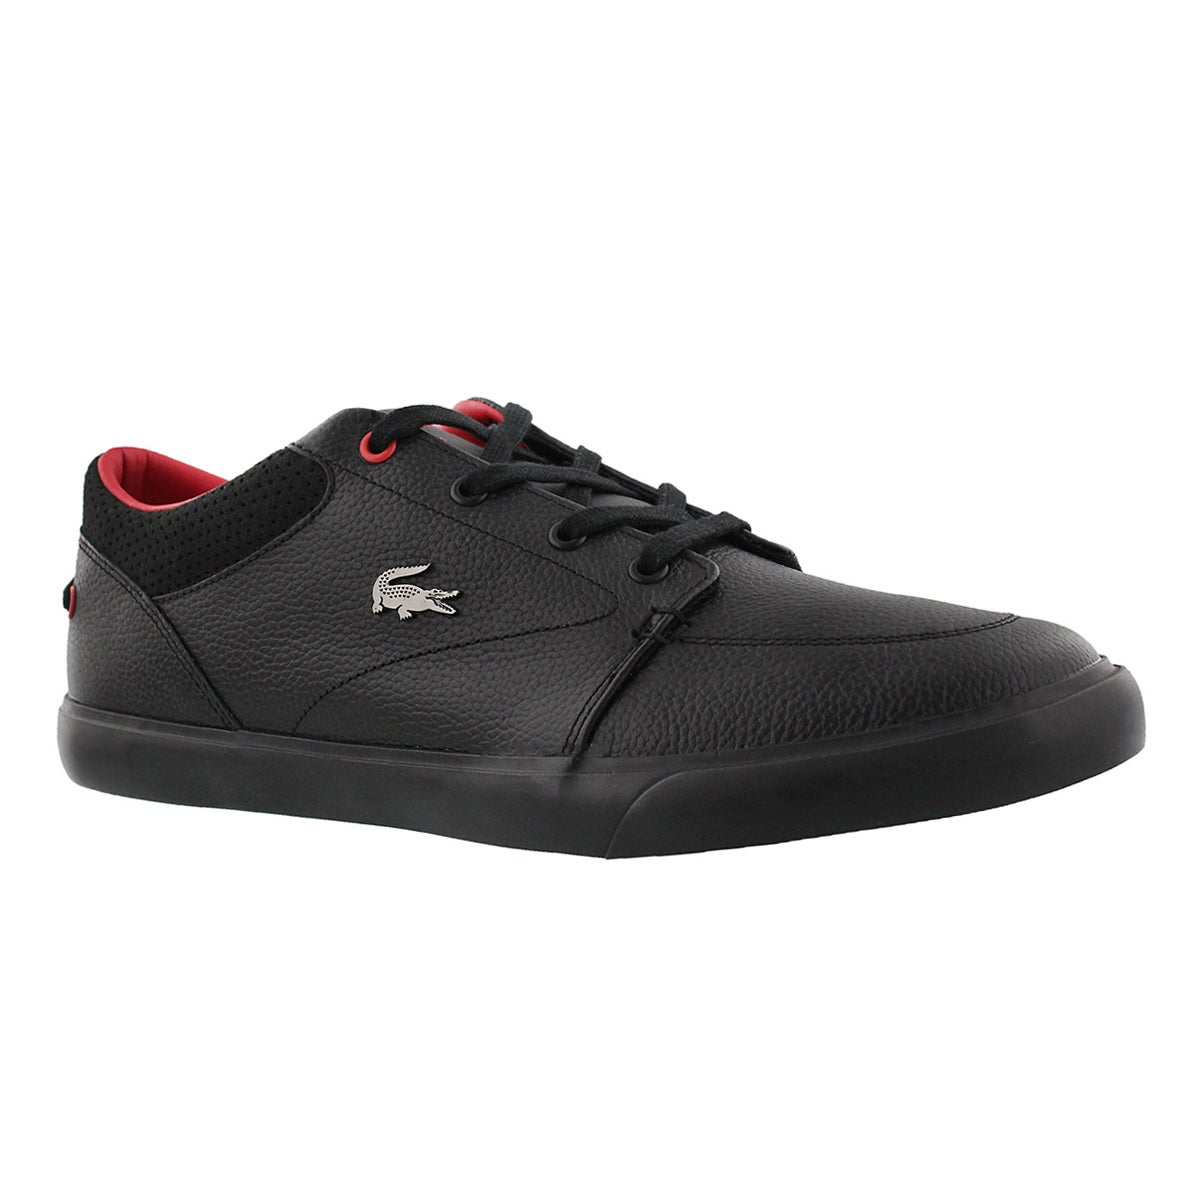 Mens Bayliss Low, Red Lacoste